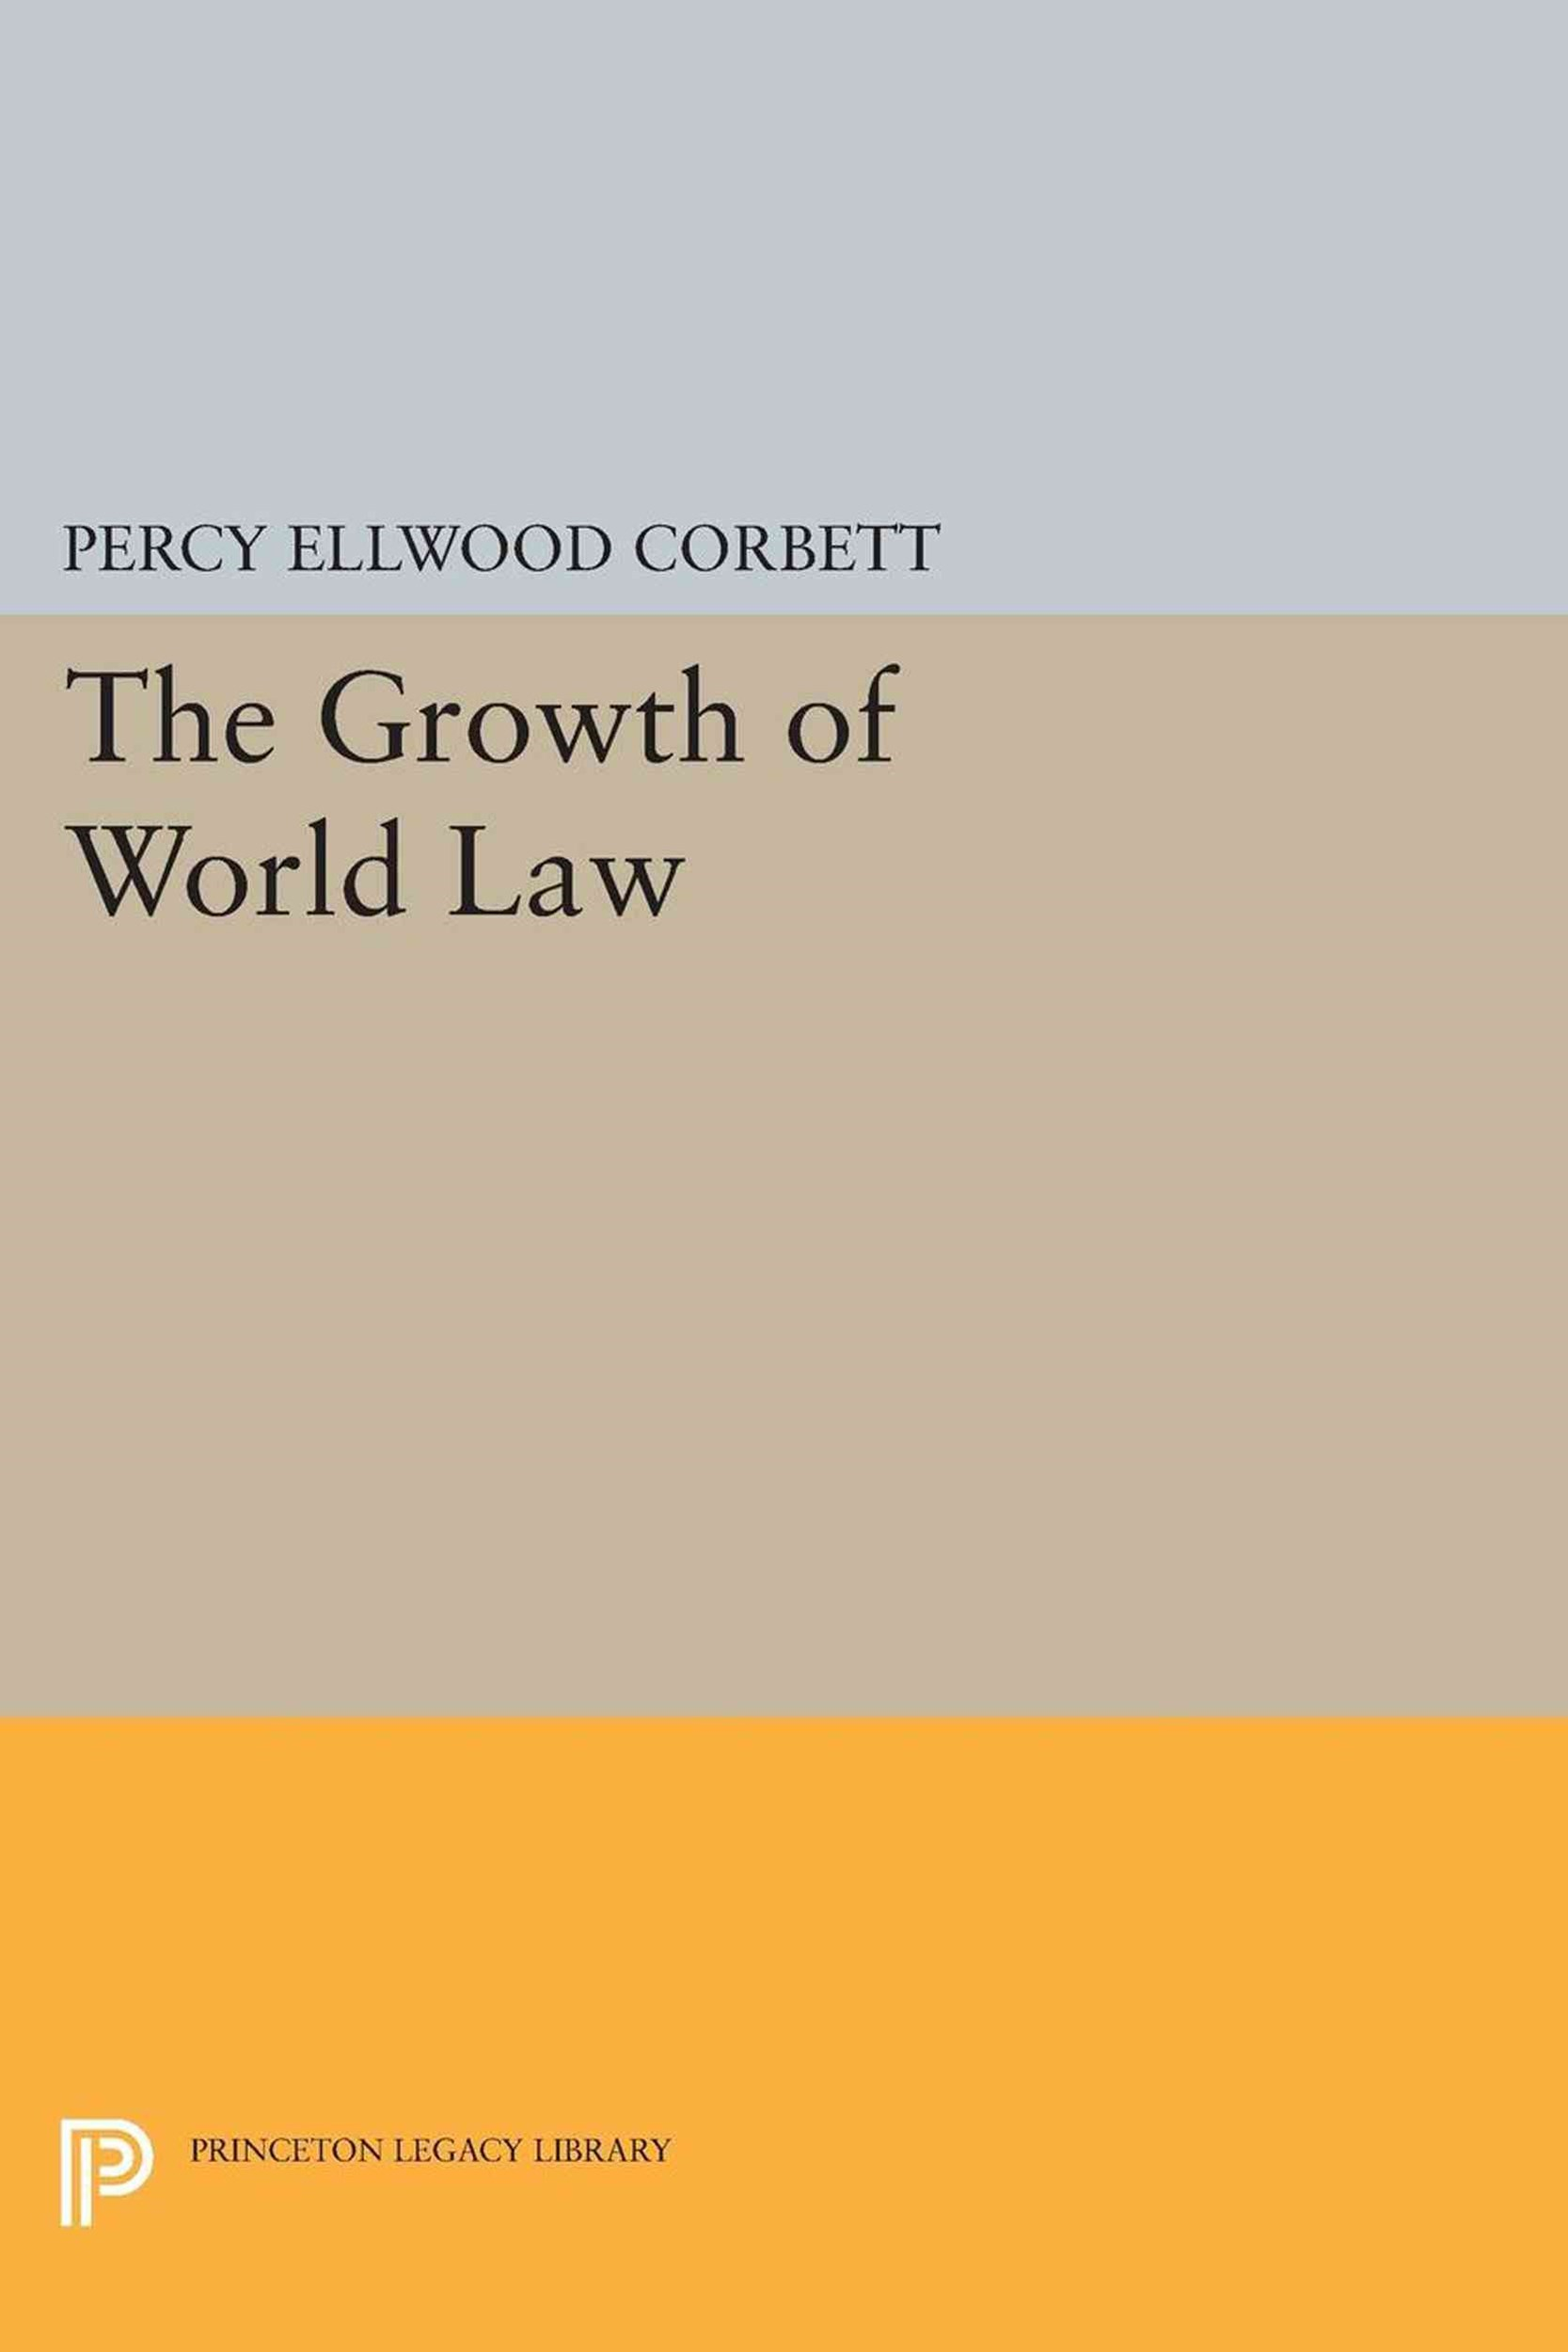 The Growth of World Law